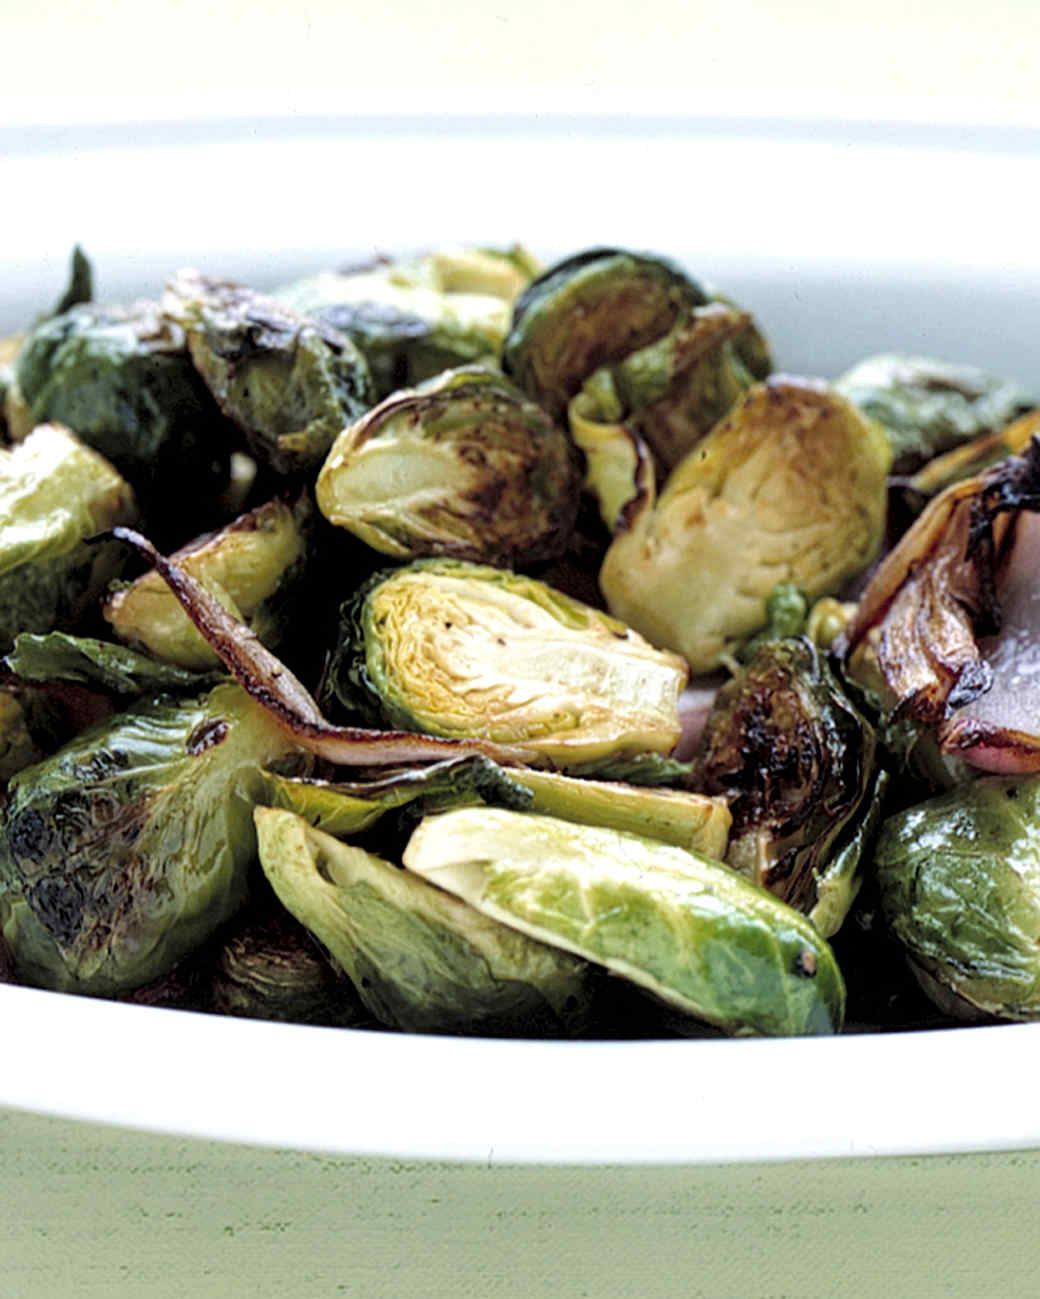 ef100402_1103_sprouts.jpg